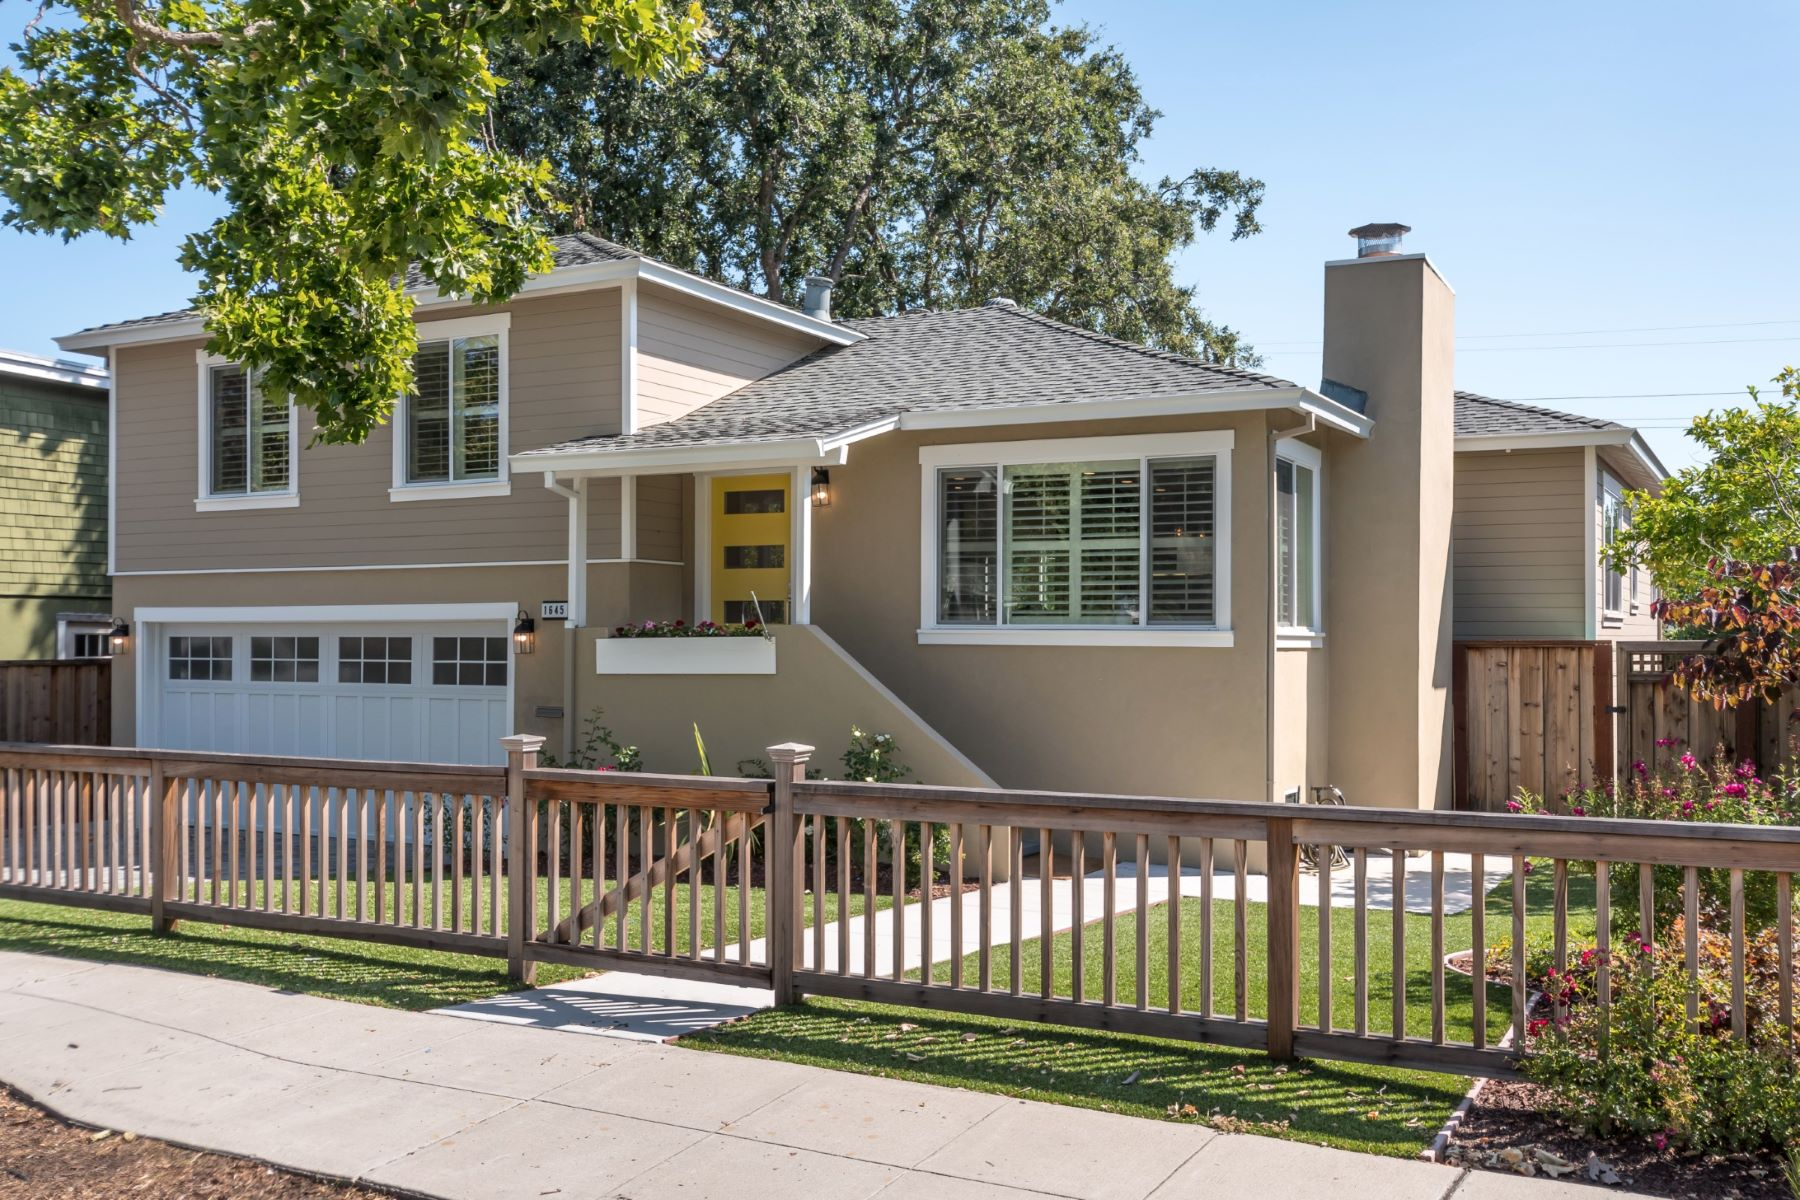 Single Family Home for Sale at 1645 Alameda de las Pulgas Redwood City, California 94061 United States